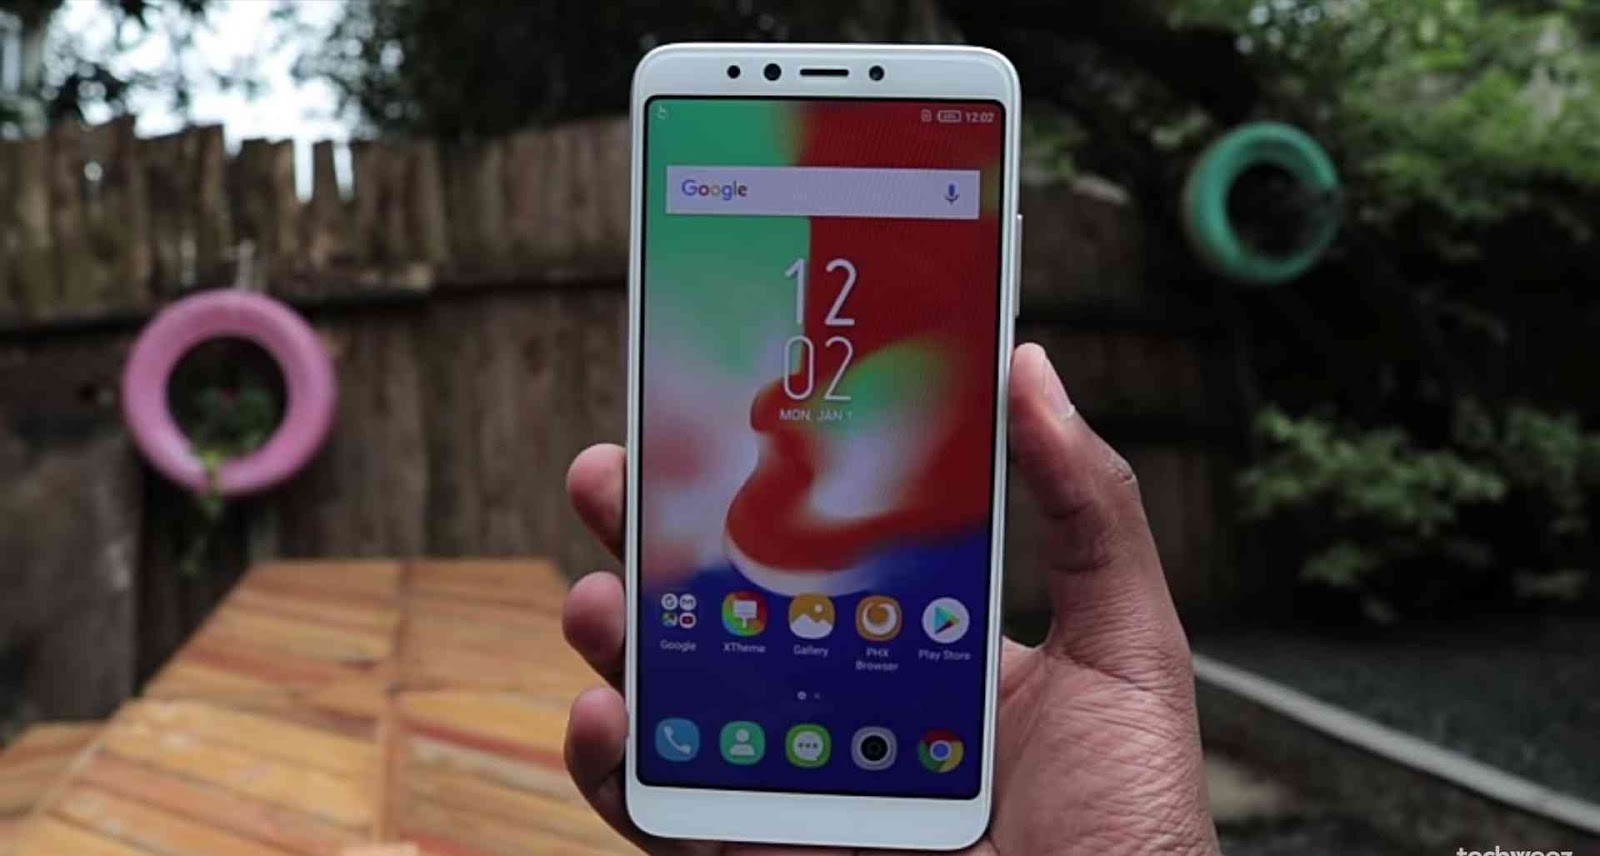 Infinix Hot 6 Pro 6 Inch HD+ Screen with 18:9 aspect ratio